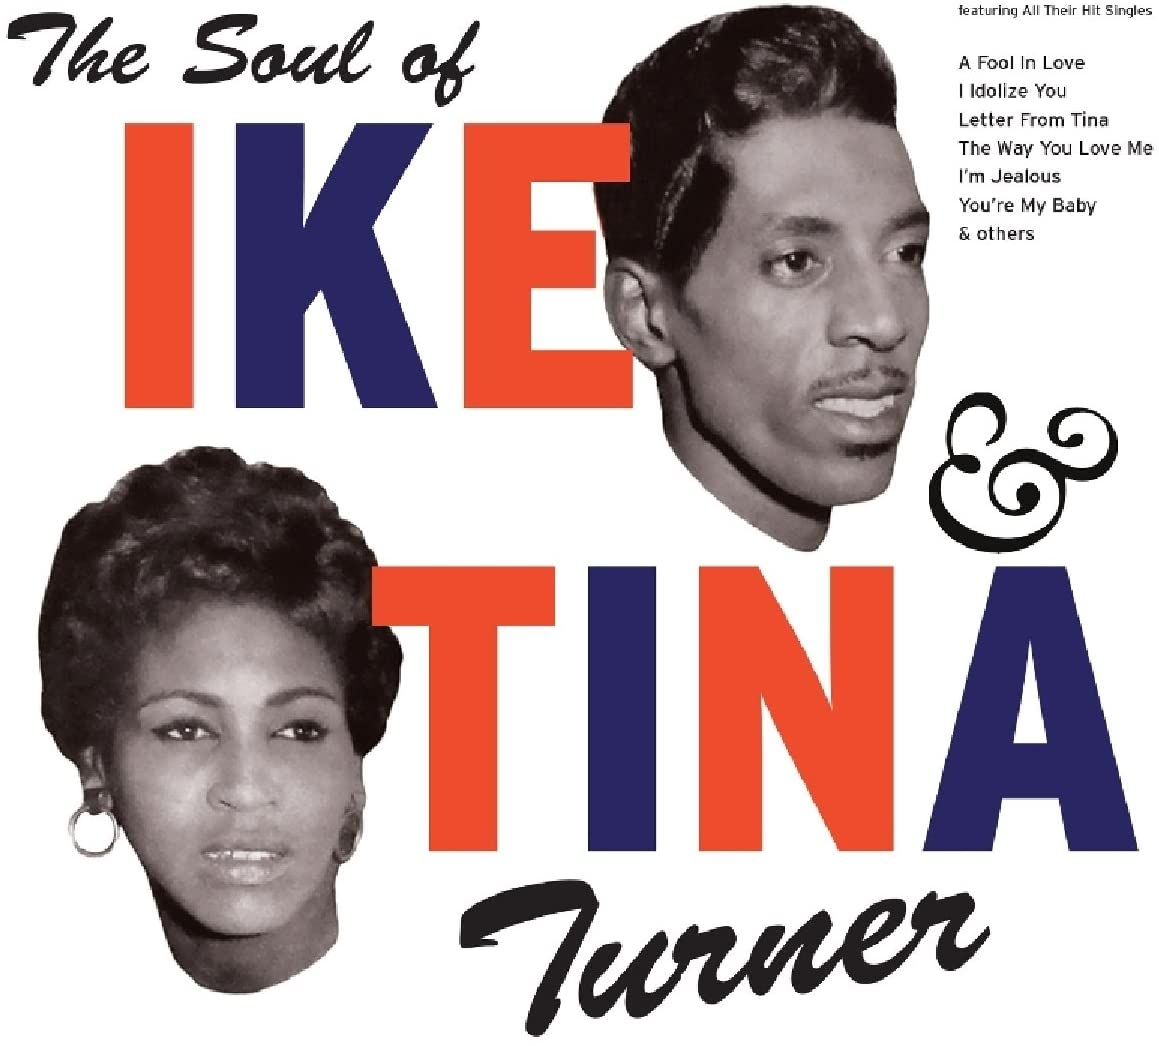 the soul of ike and tina turnerアイキャッチ